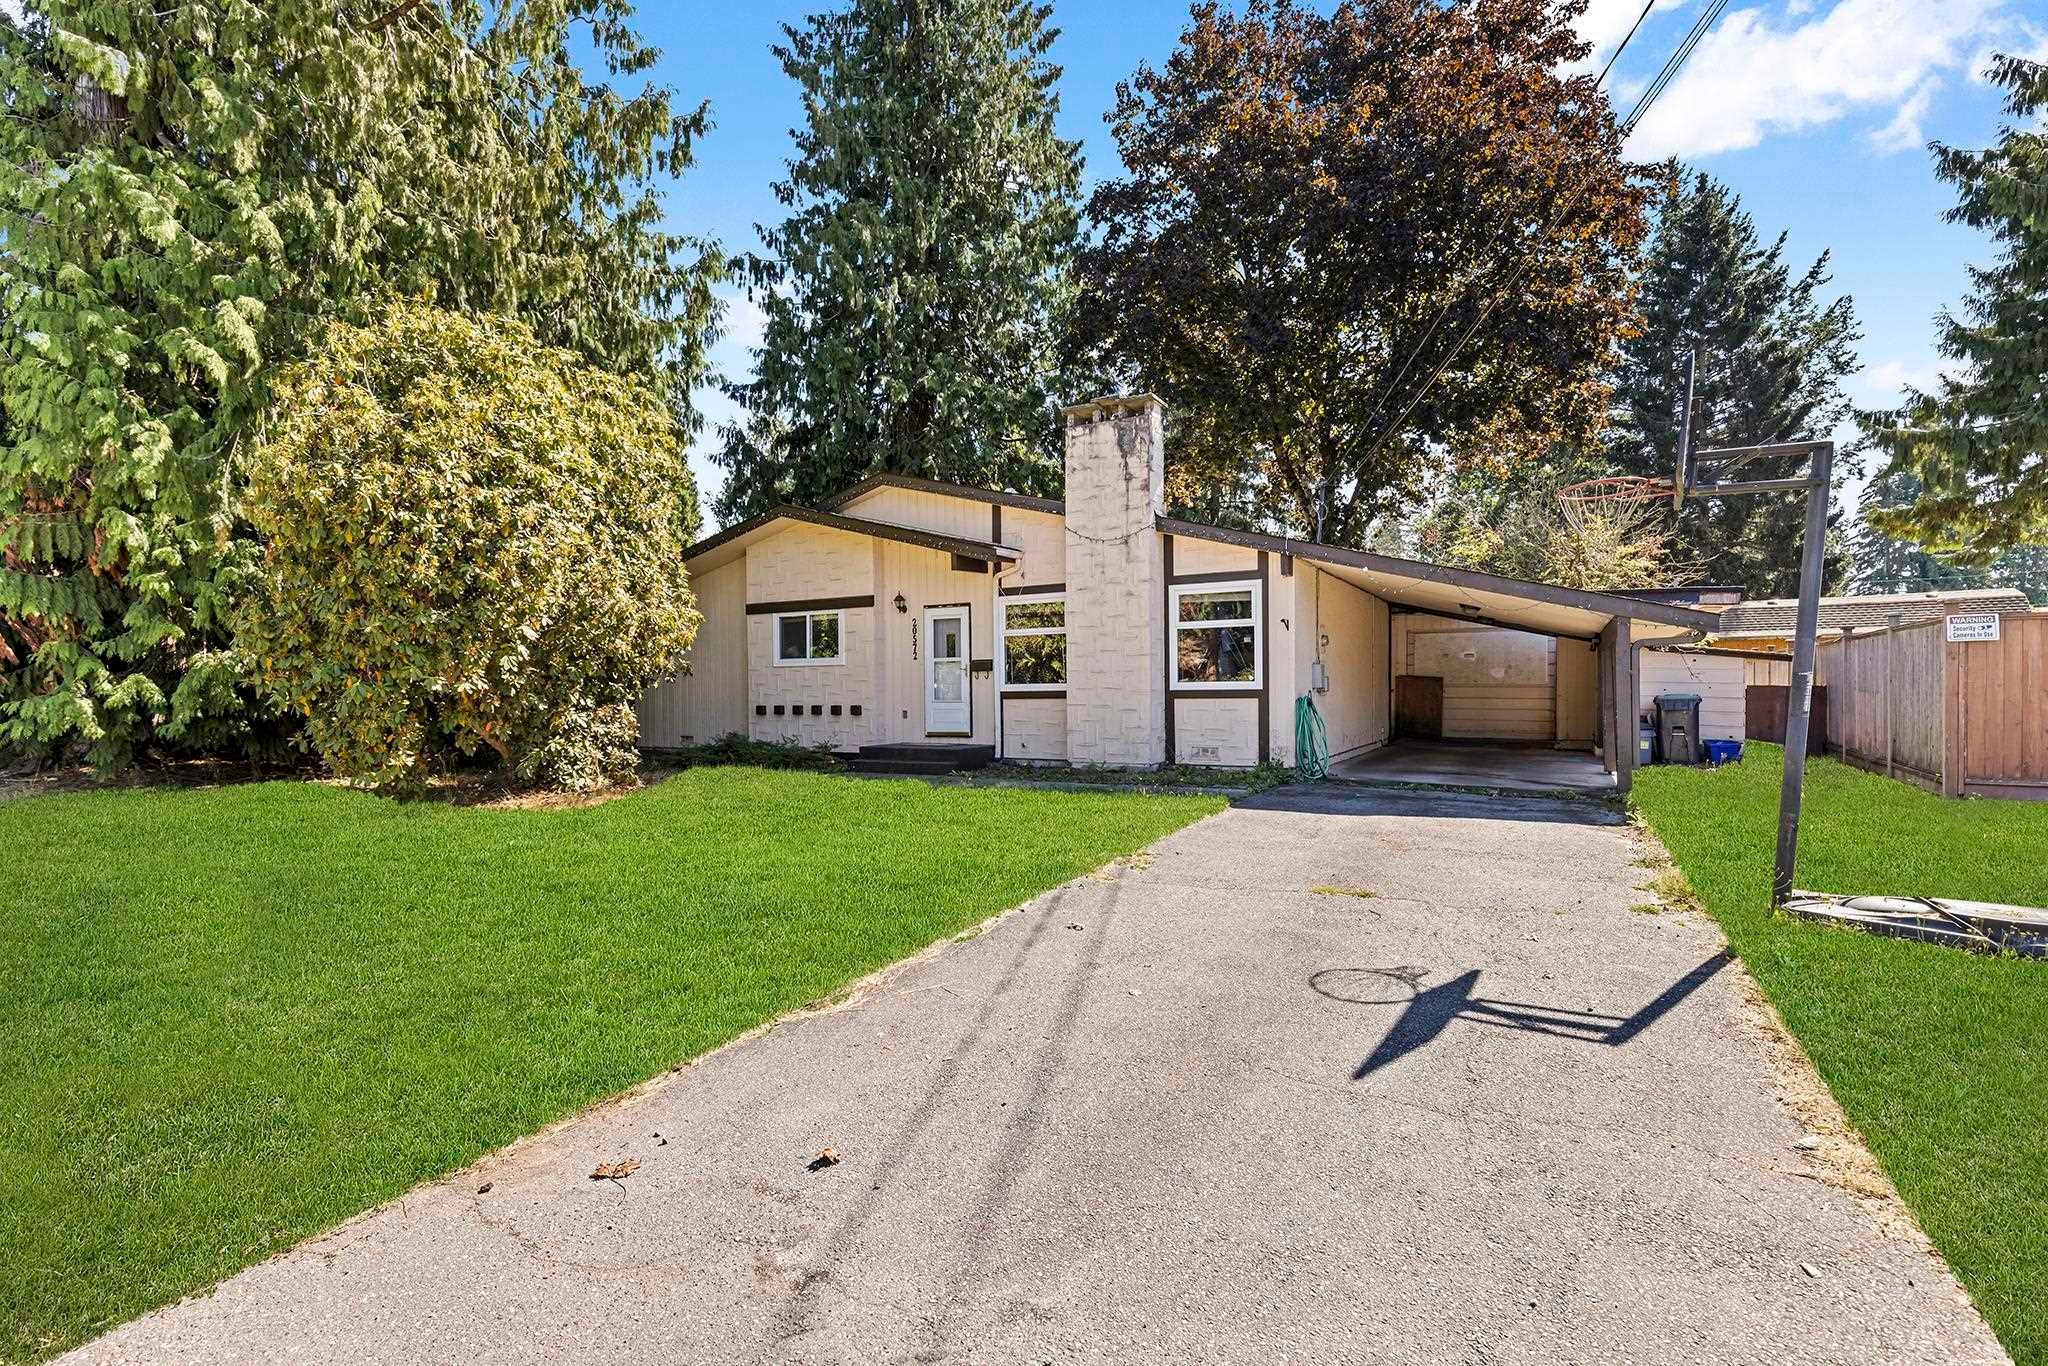 20572 43 AVENUE - Brookswood Langley House/Single Family for sale, 4 Bedrooms (R2624418) - #1